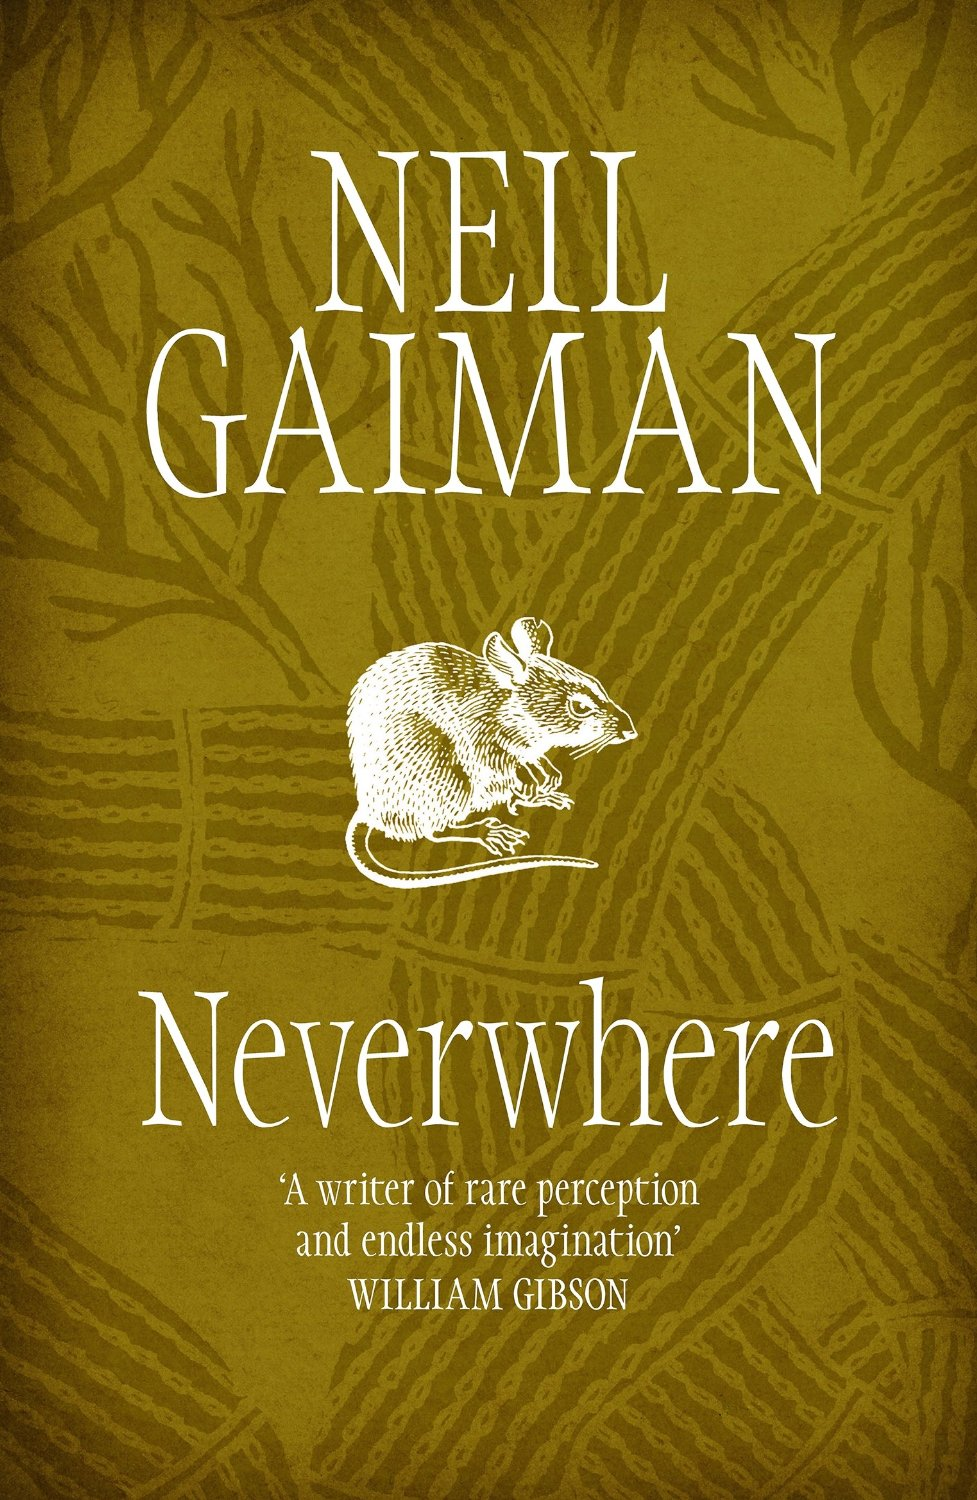 neverwhere-book